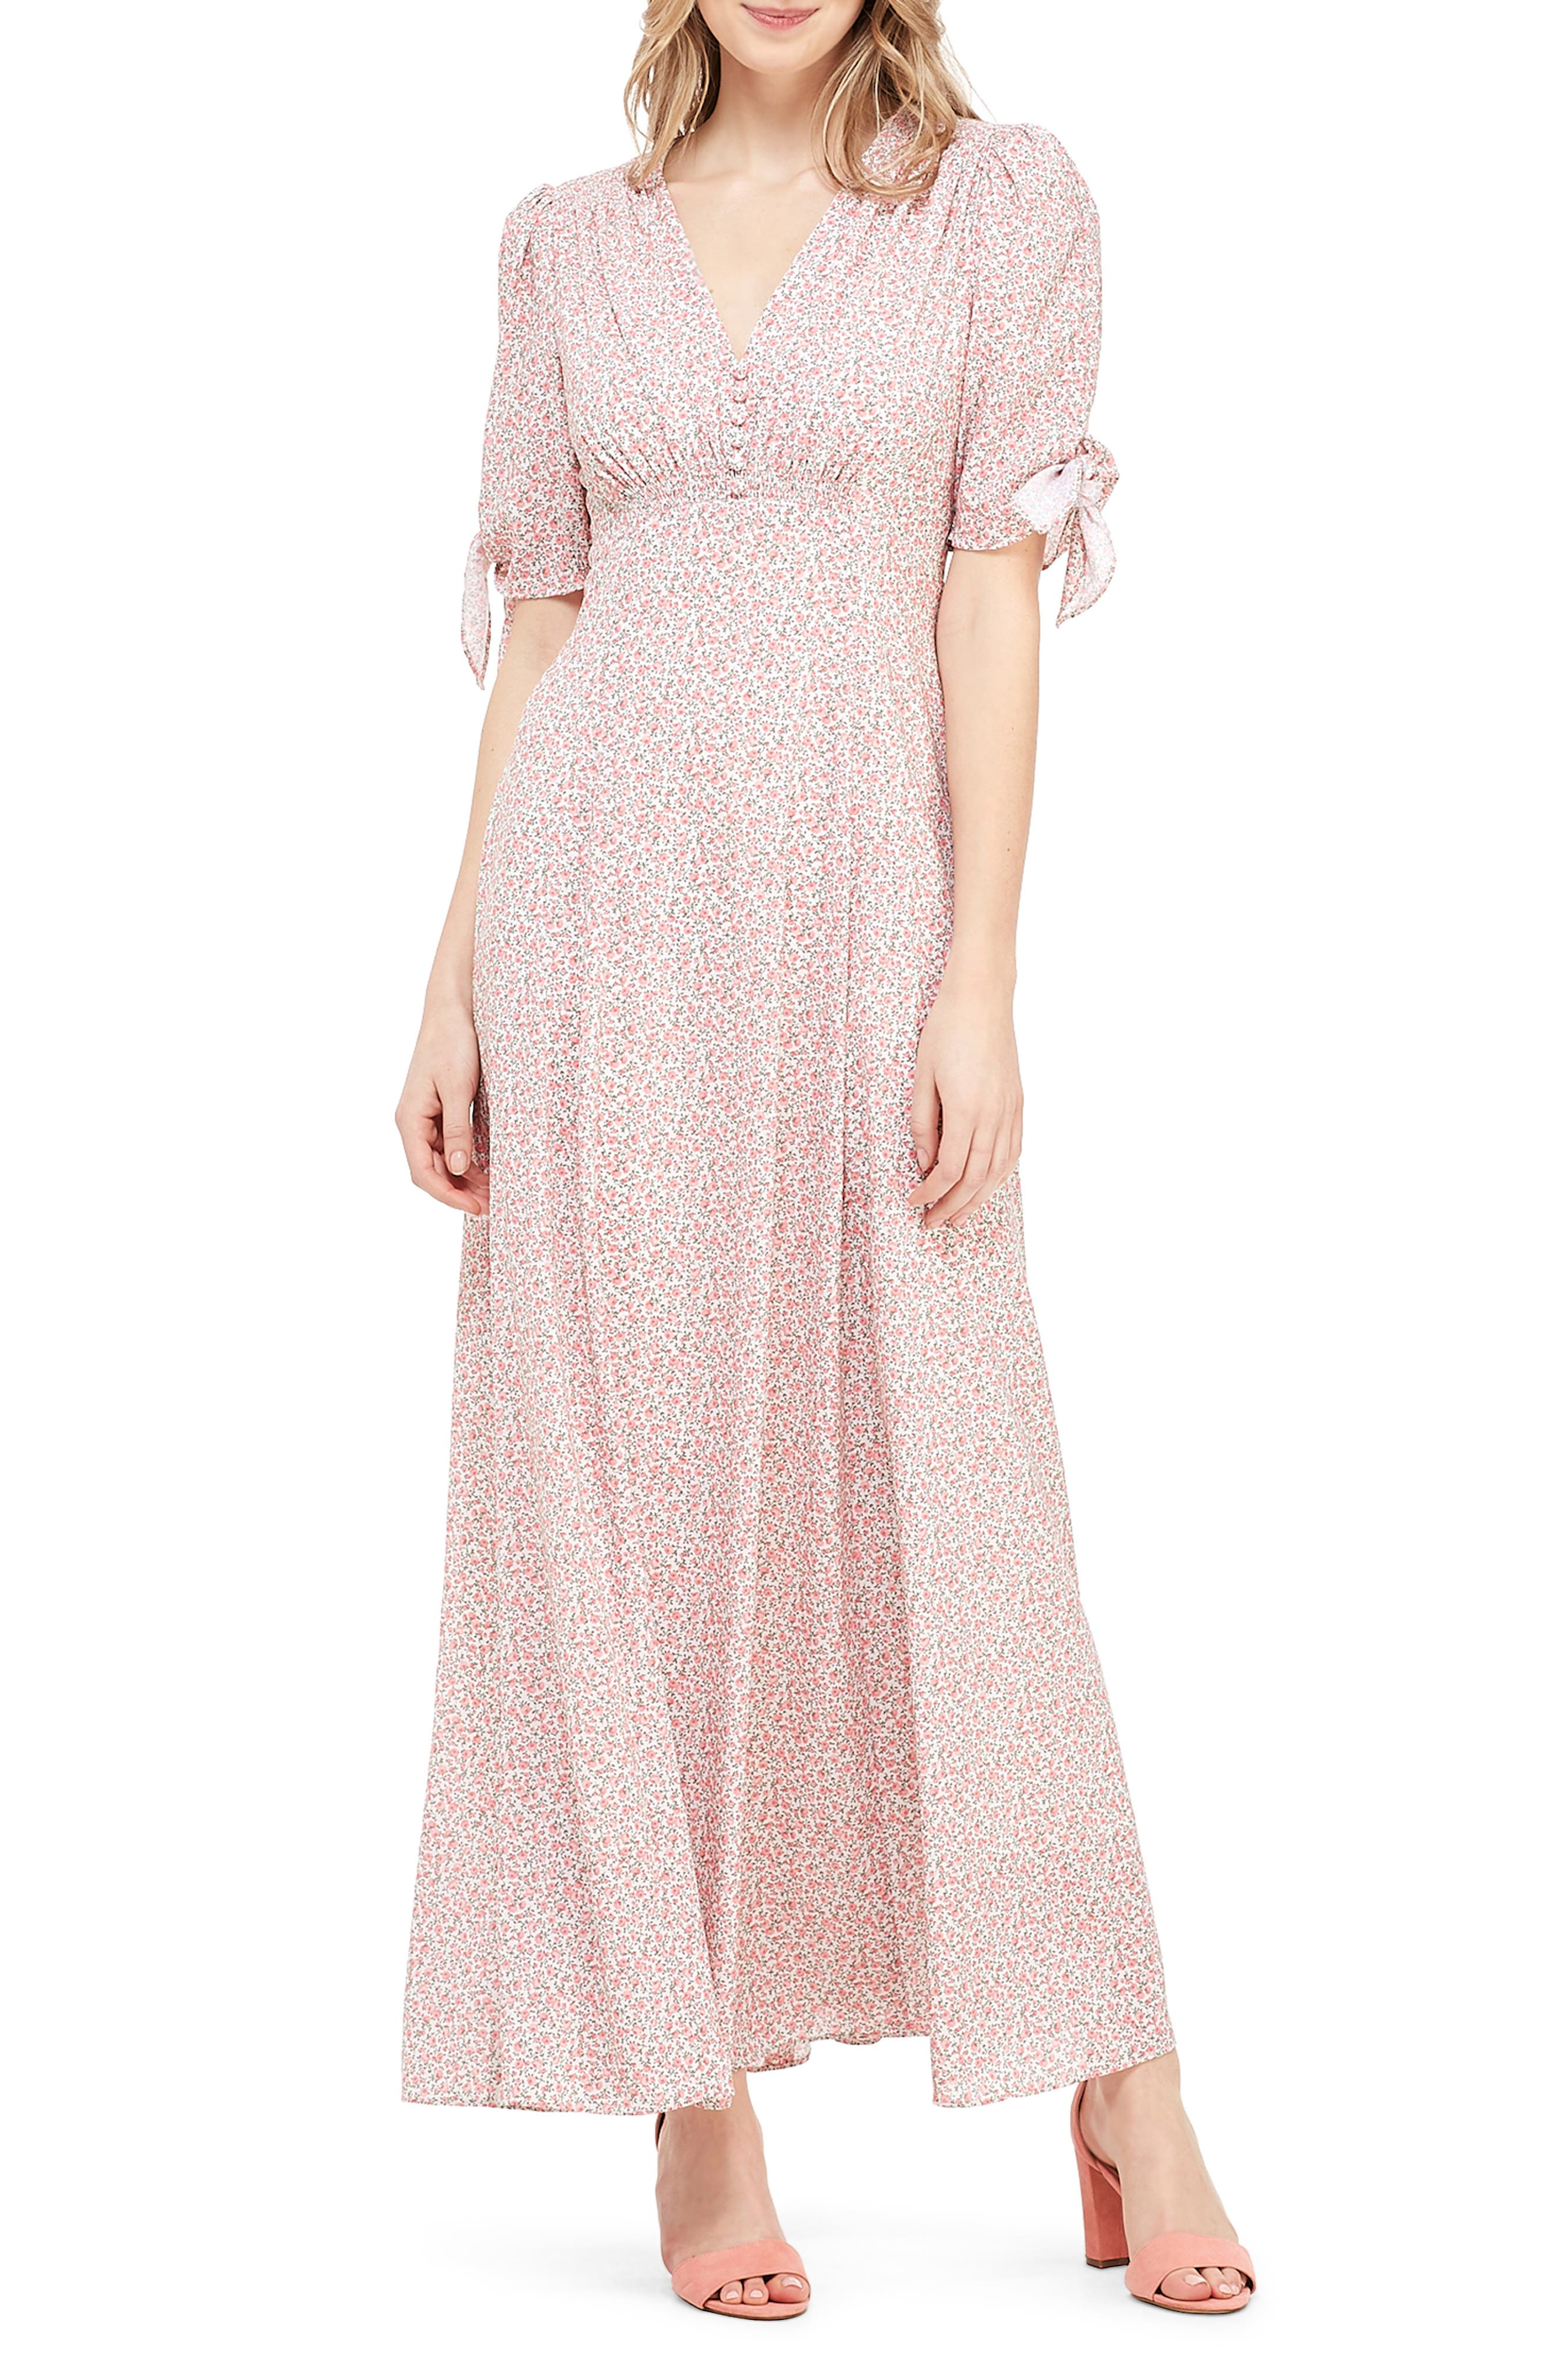 Gal Meets Glam Collection Ditsy Floral Print Maxi Dress, Pink